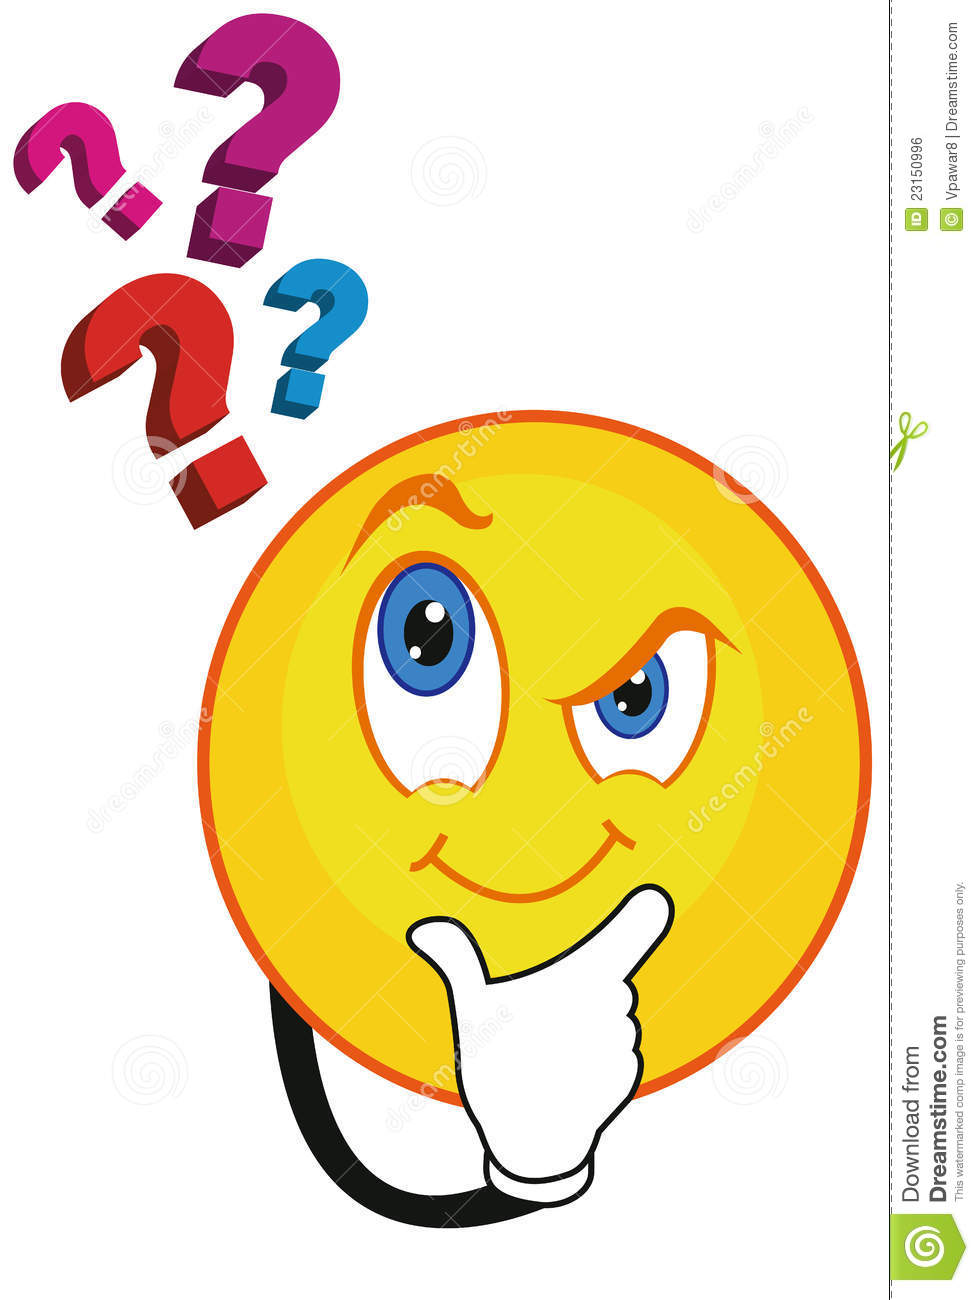 Question Clipart Displaying 8 Images For Animated Question Clipart